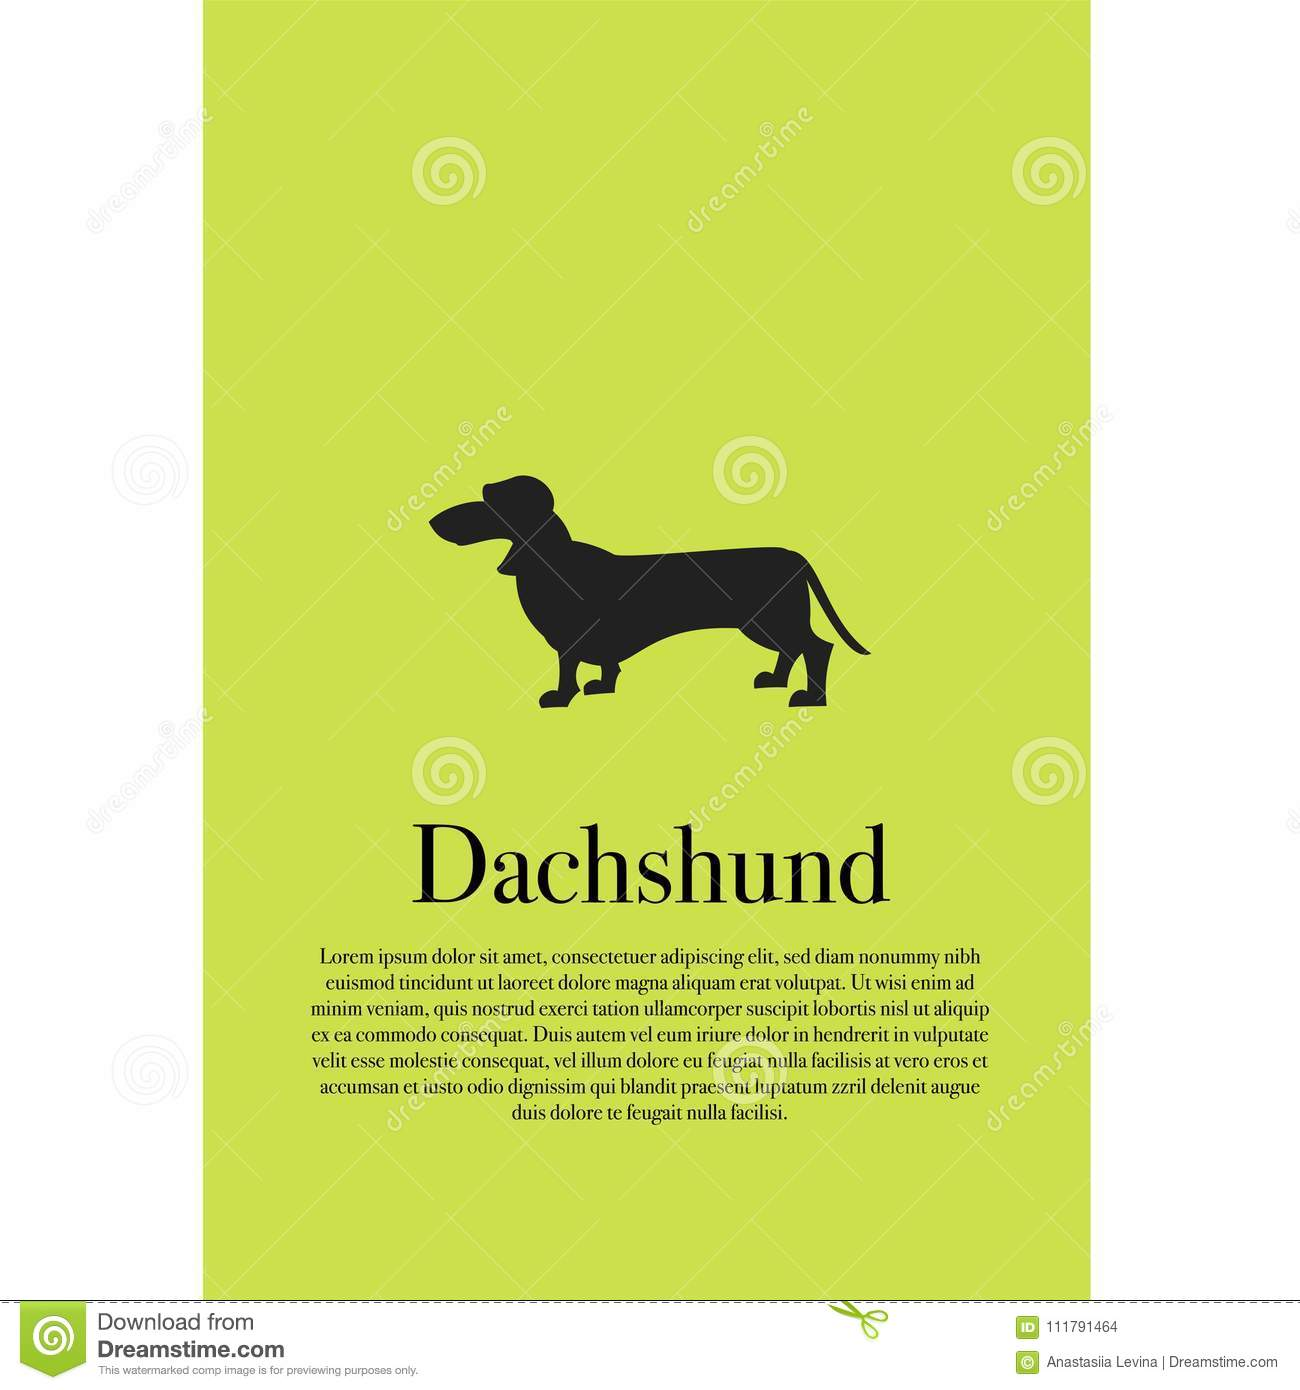 Dog Dachshund Silhouette Poster Stock Vector - Illustration